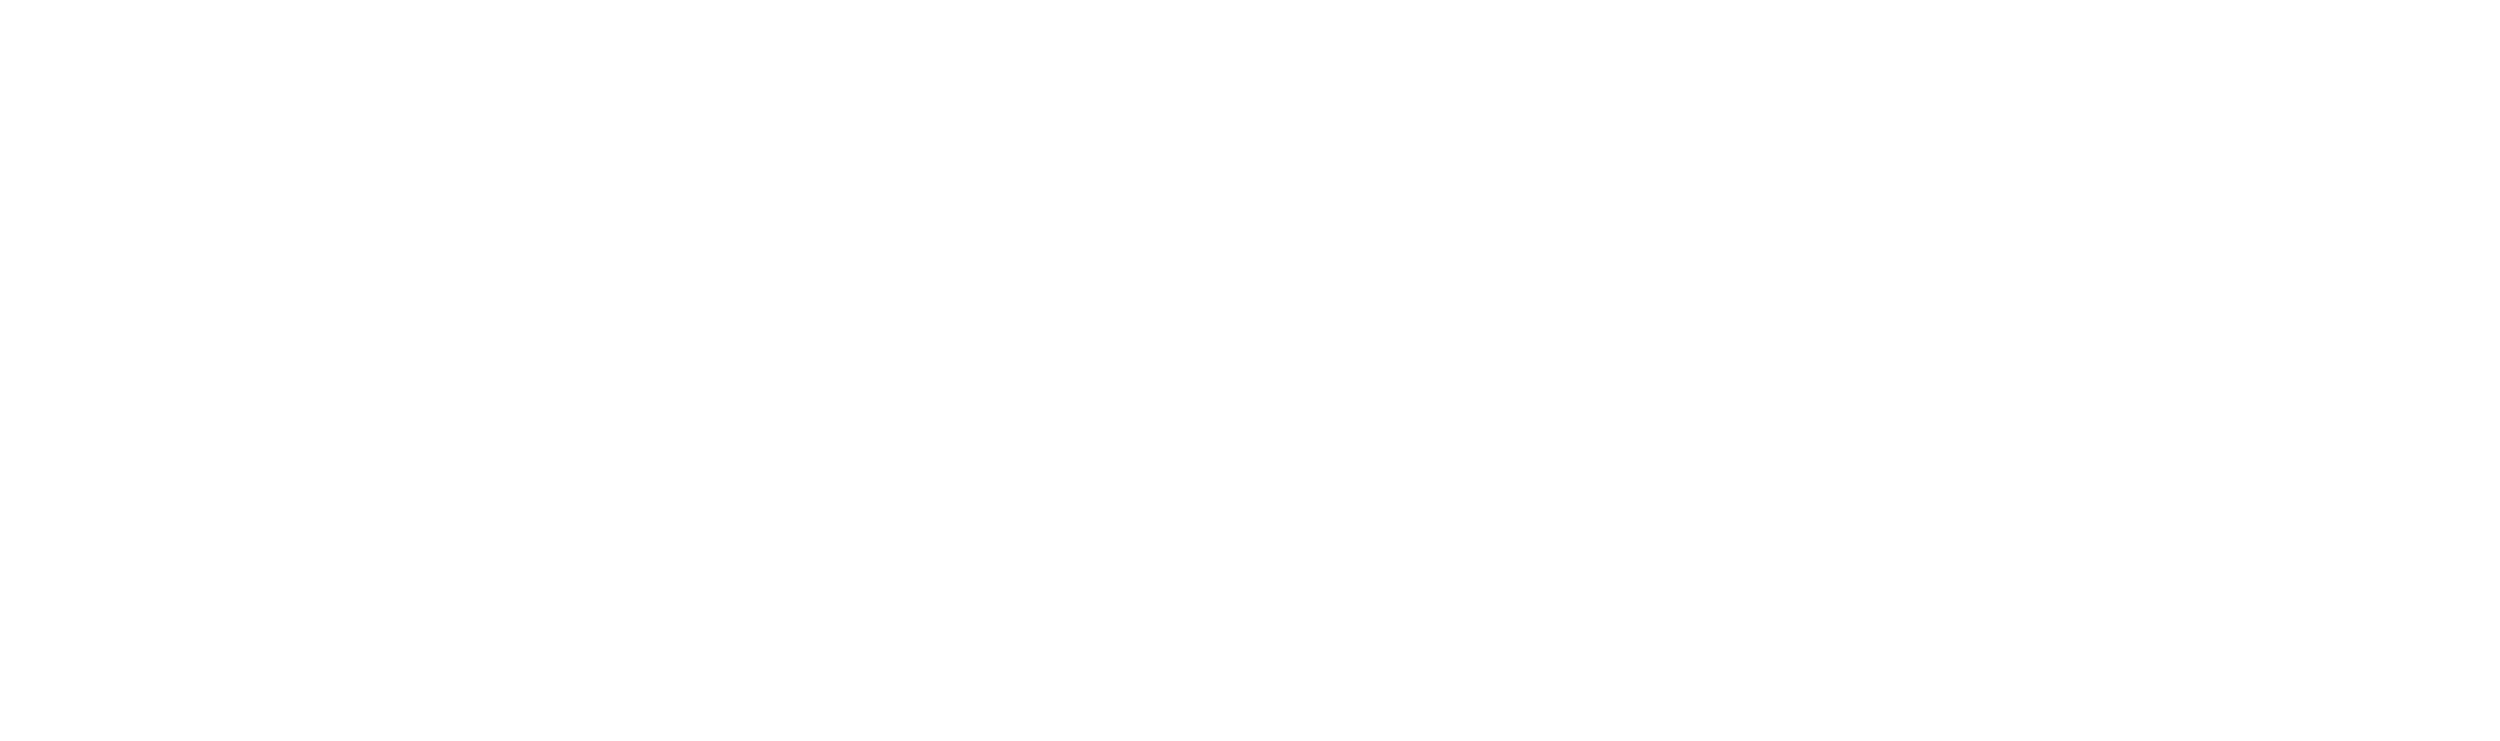 approach.png